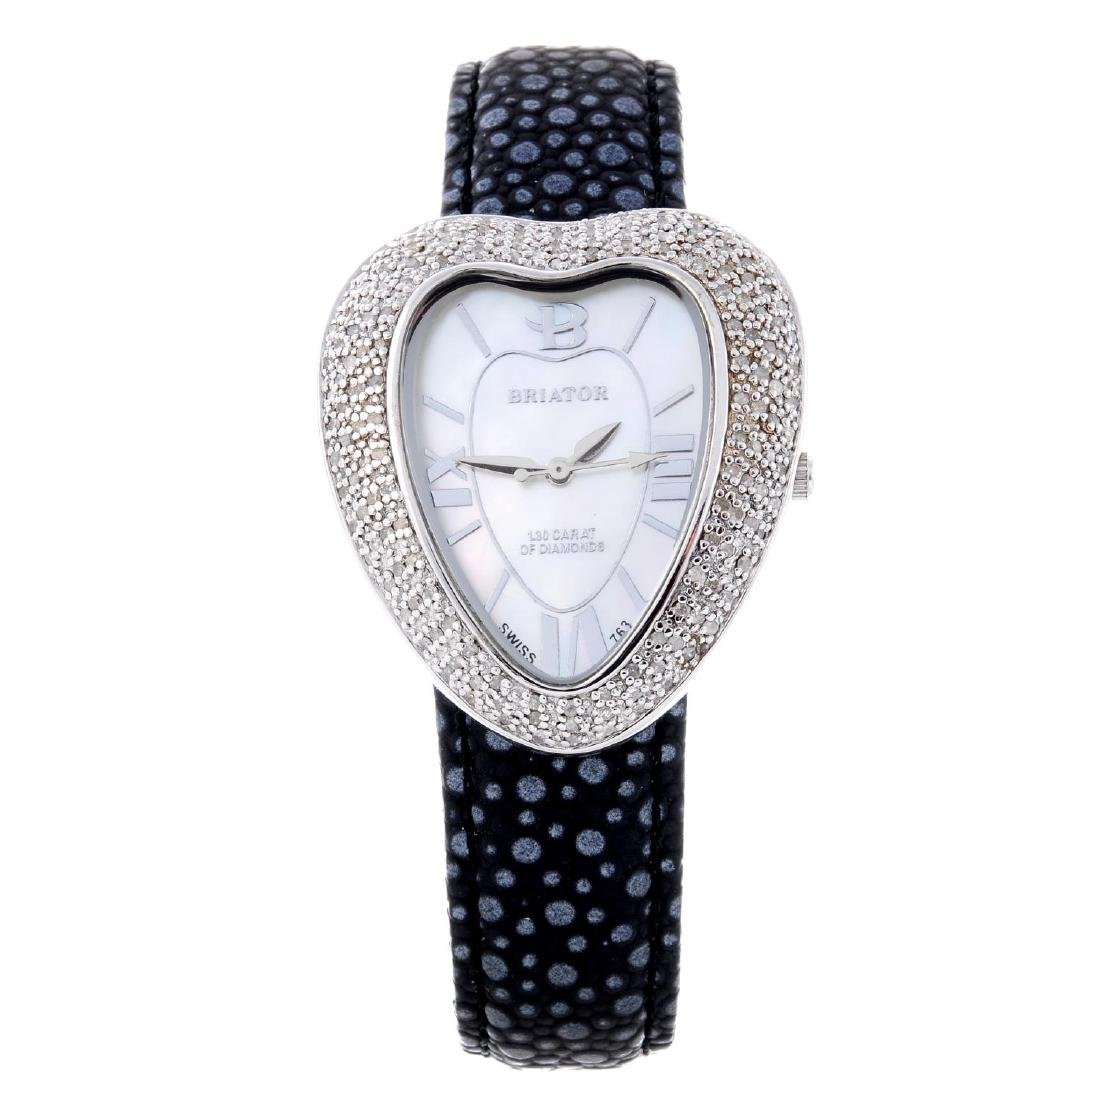 BRIATOR - a lady's white metal wrist watch. White metal